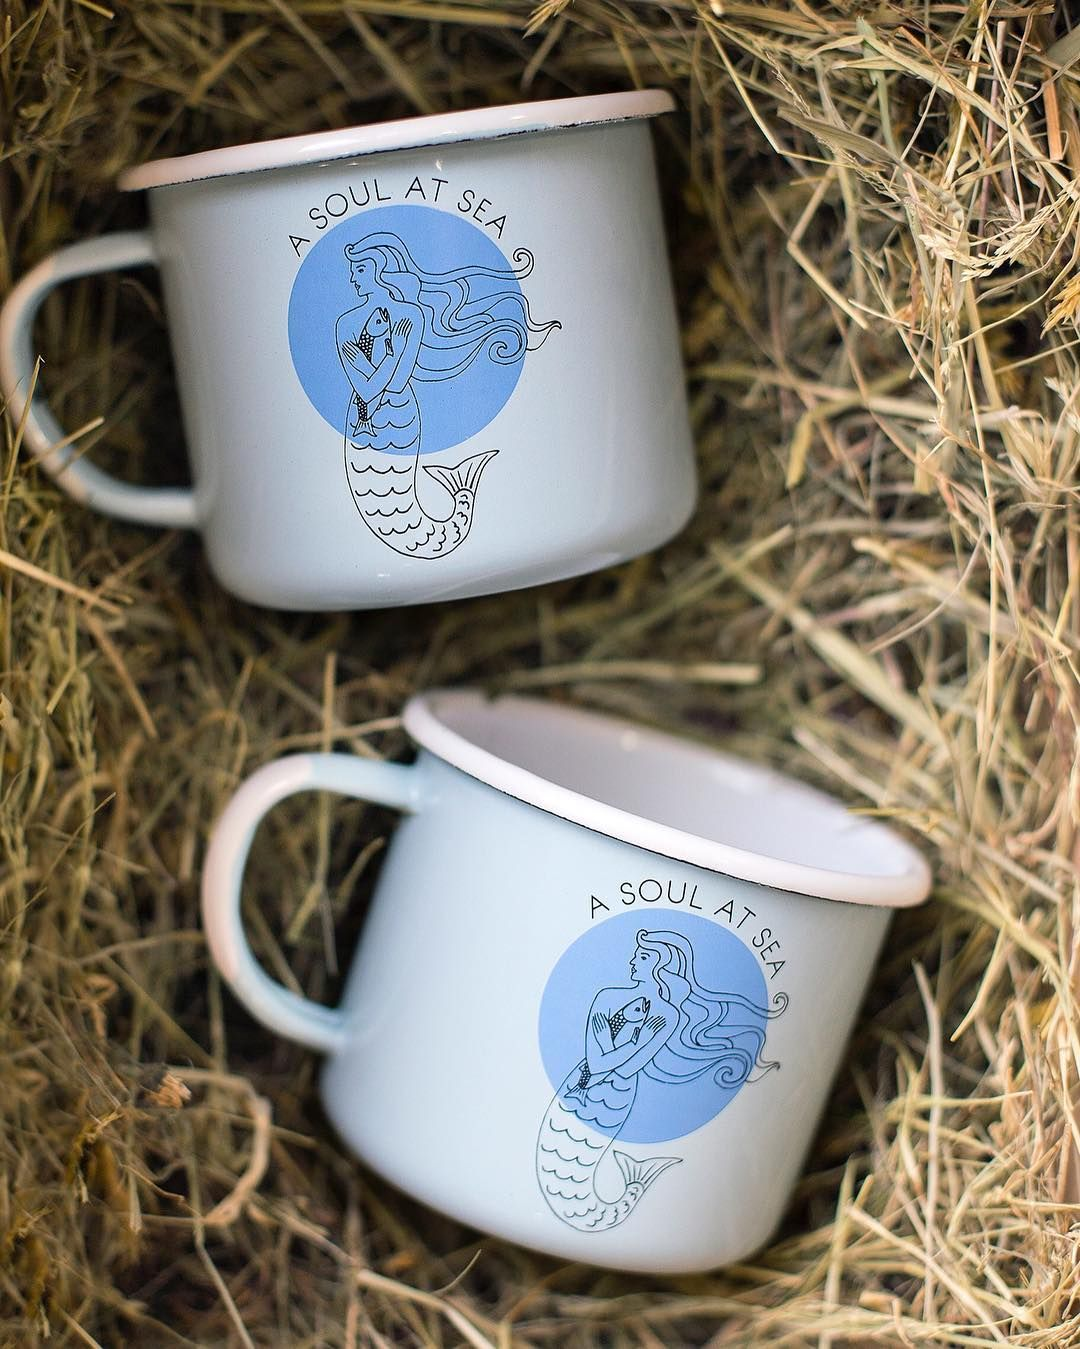 A Soul at Sea. New enamel mugs made for the people whose souls need the sea. Check out what's new on our webshop and sign up for our newsletter to get the first scoop on our Winter Collection () being released at the end of October.  #aksalmonsisters #enamelmug #soulatsea #mermaidlife #turquoise #periwinkle #enamelware #campmug #wintercollection